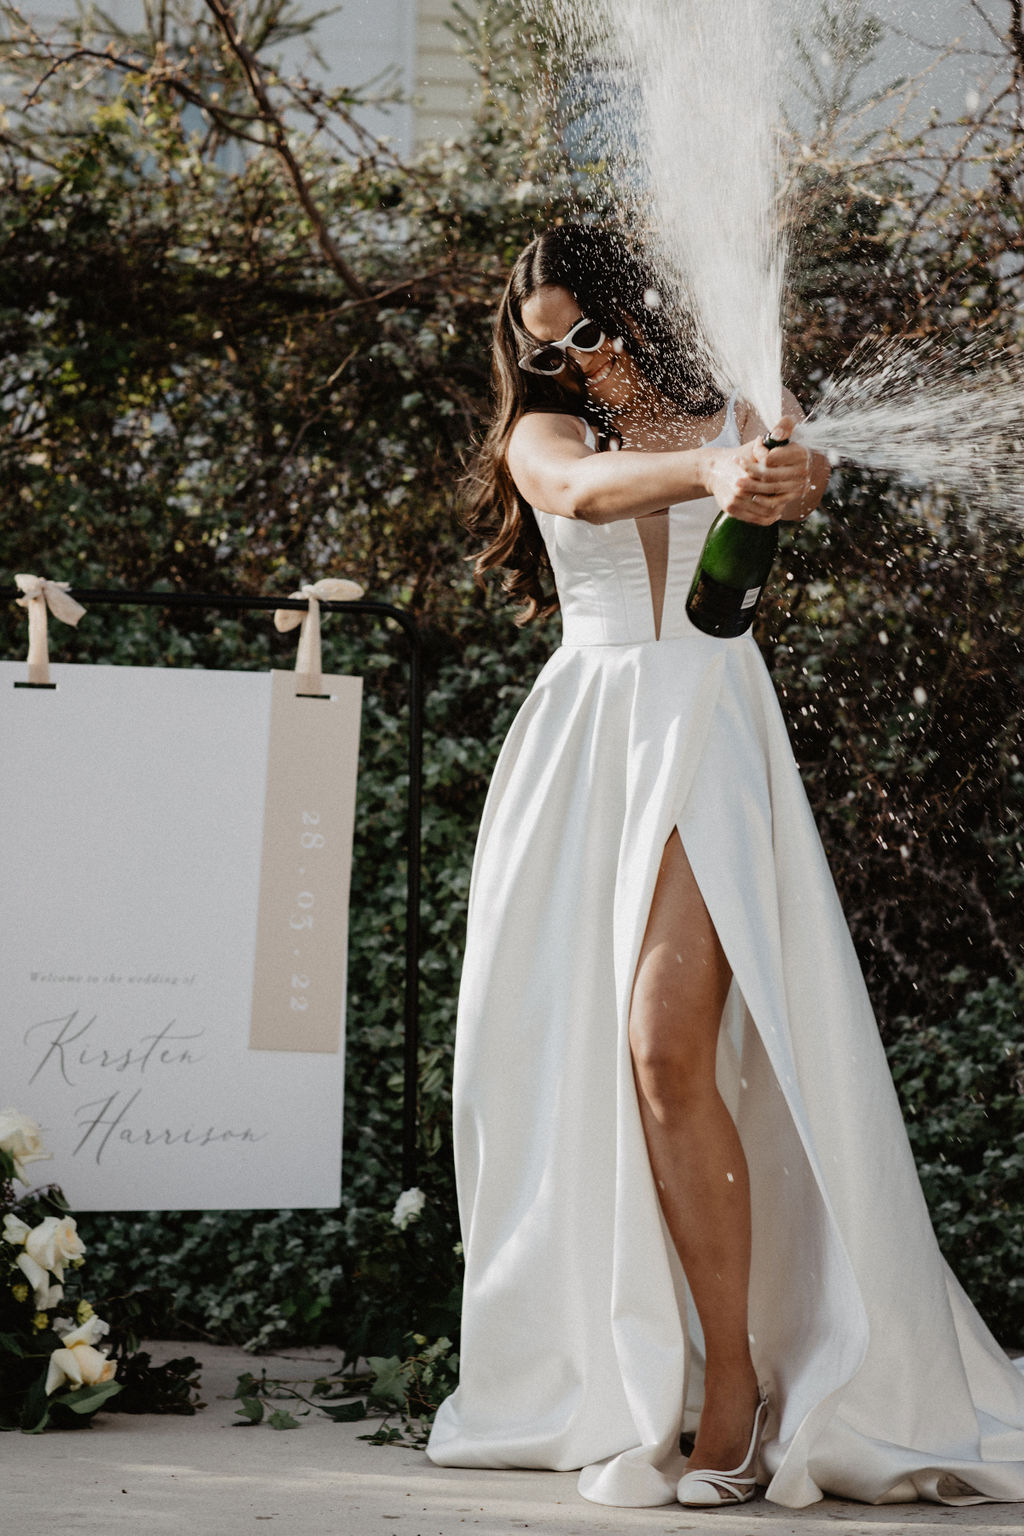 mt weddings perth photography florals bridal gown styled shoot